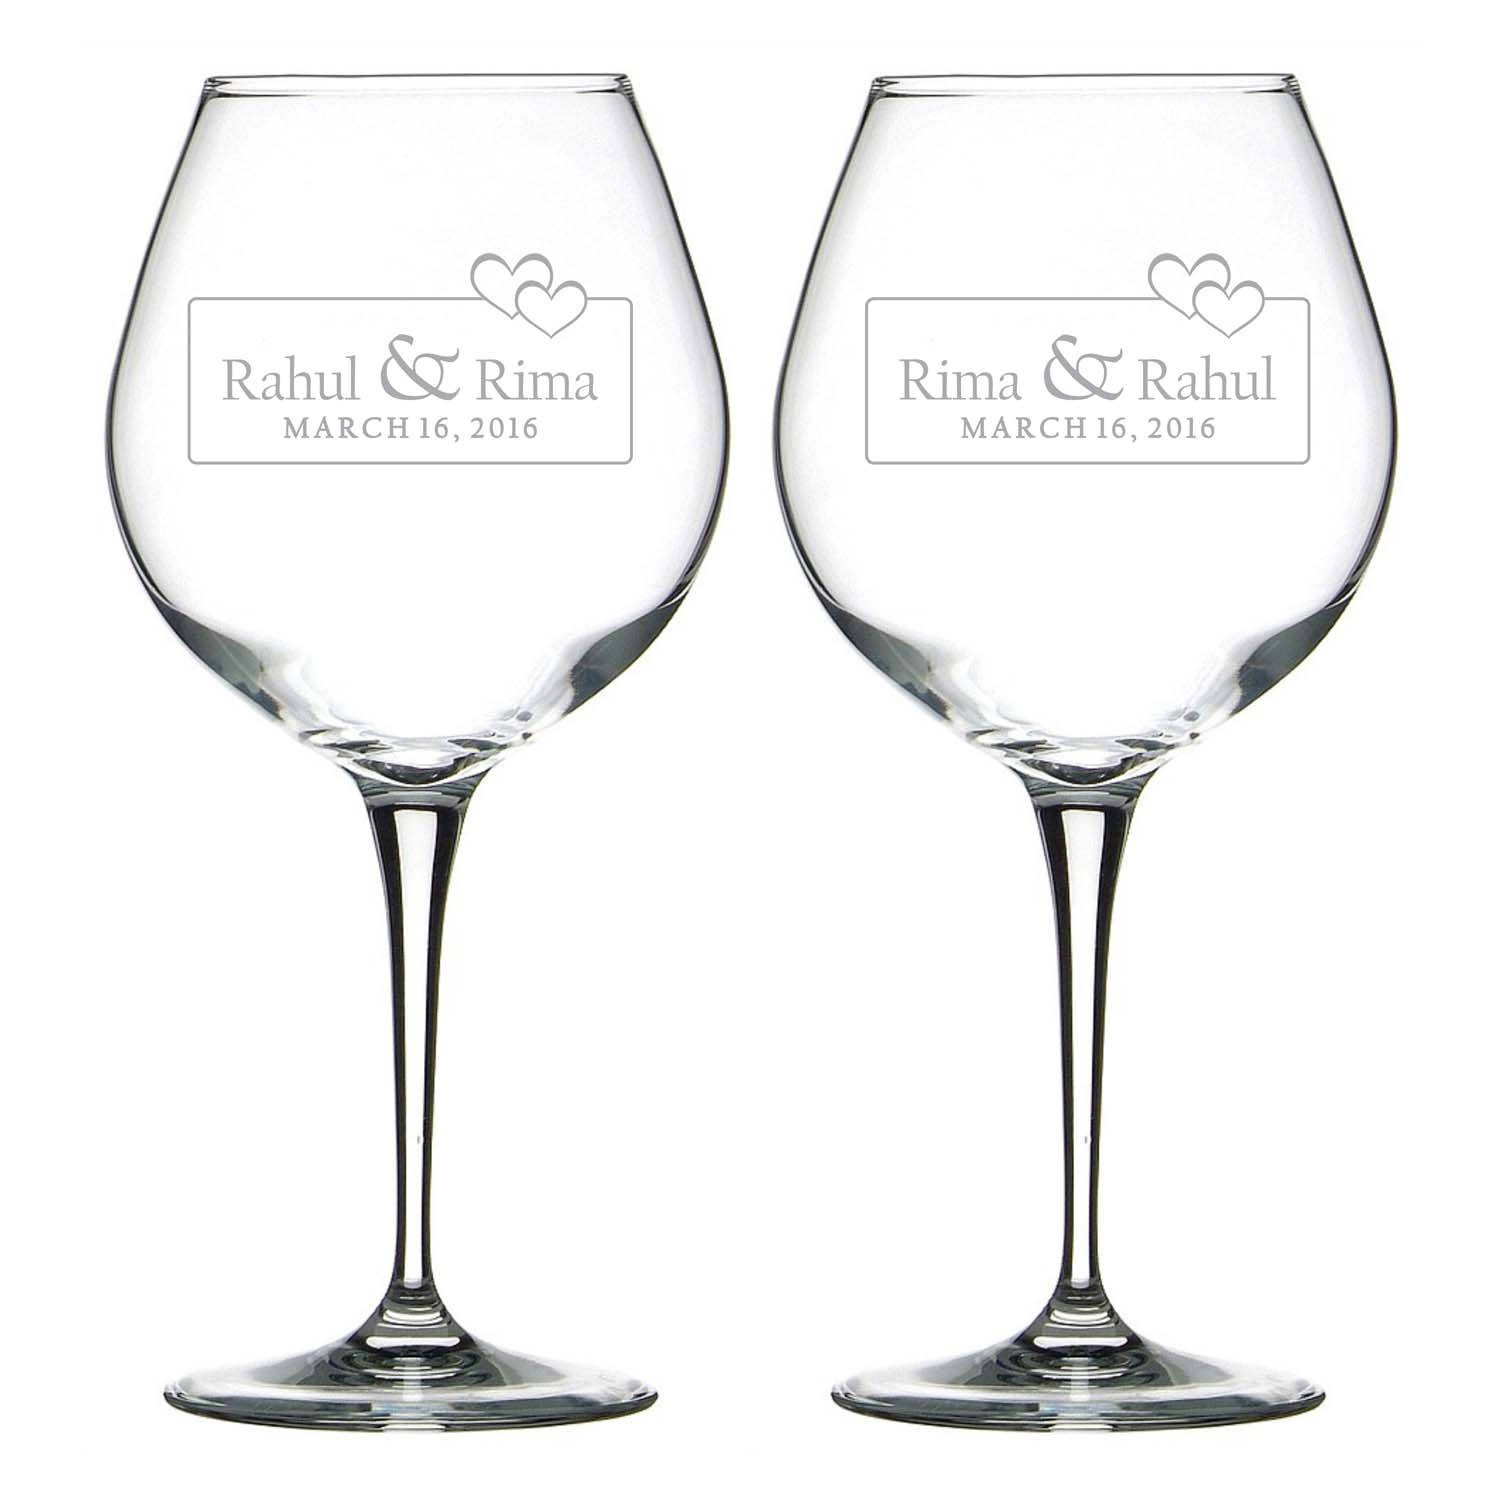 Bonded by Love Personalized Engraved Wine Glass